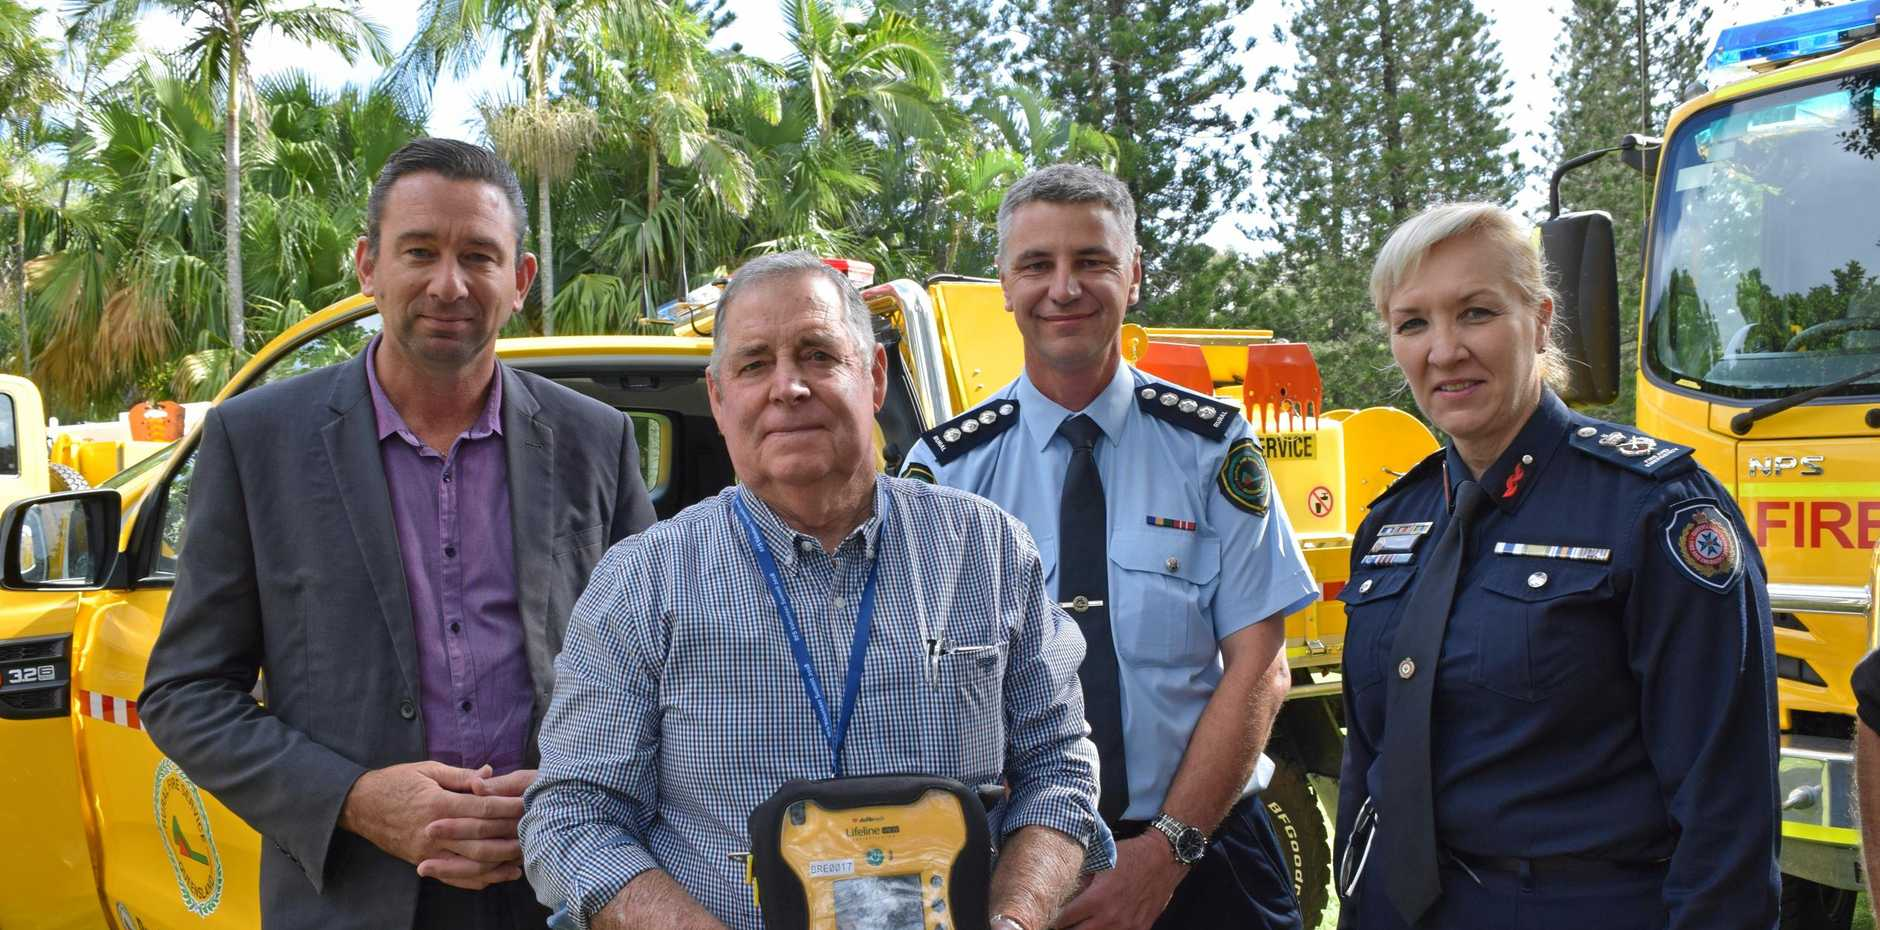 Minister Craig Crawford, Noosa volunteer firefighter Ian Pike, Inspector Mark Saunders and Katarina Carroll announce the installation of defibrillators in all rural fire service vehicles in Queensland.